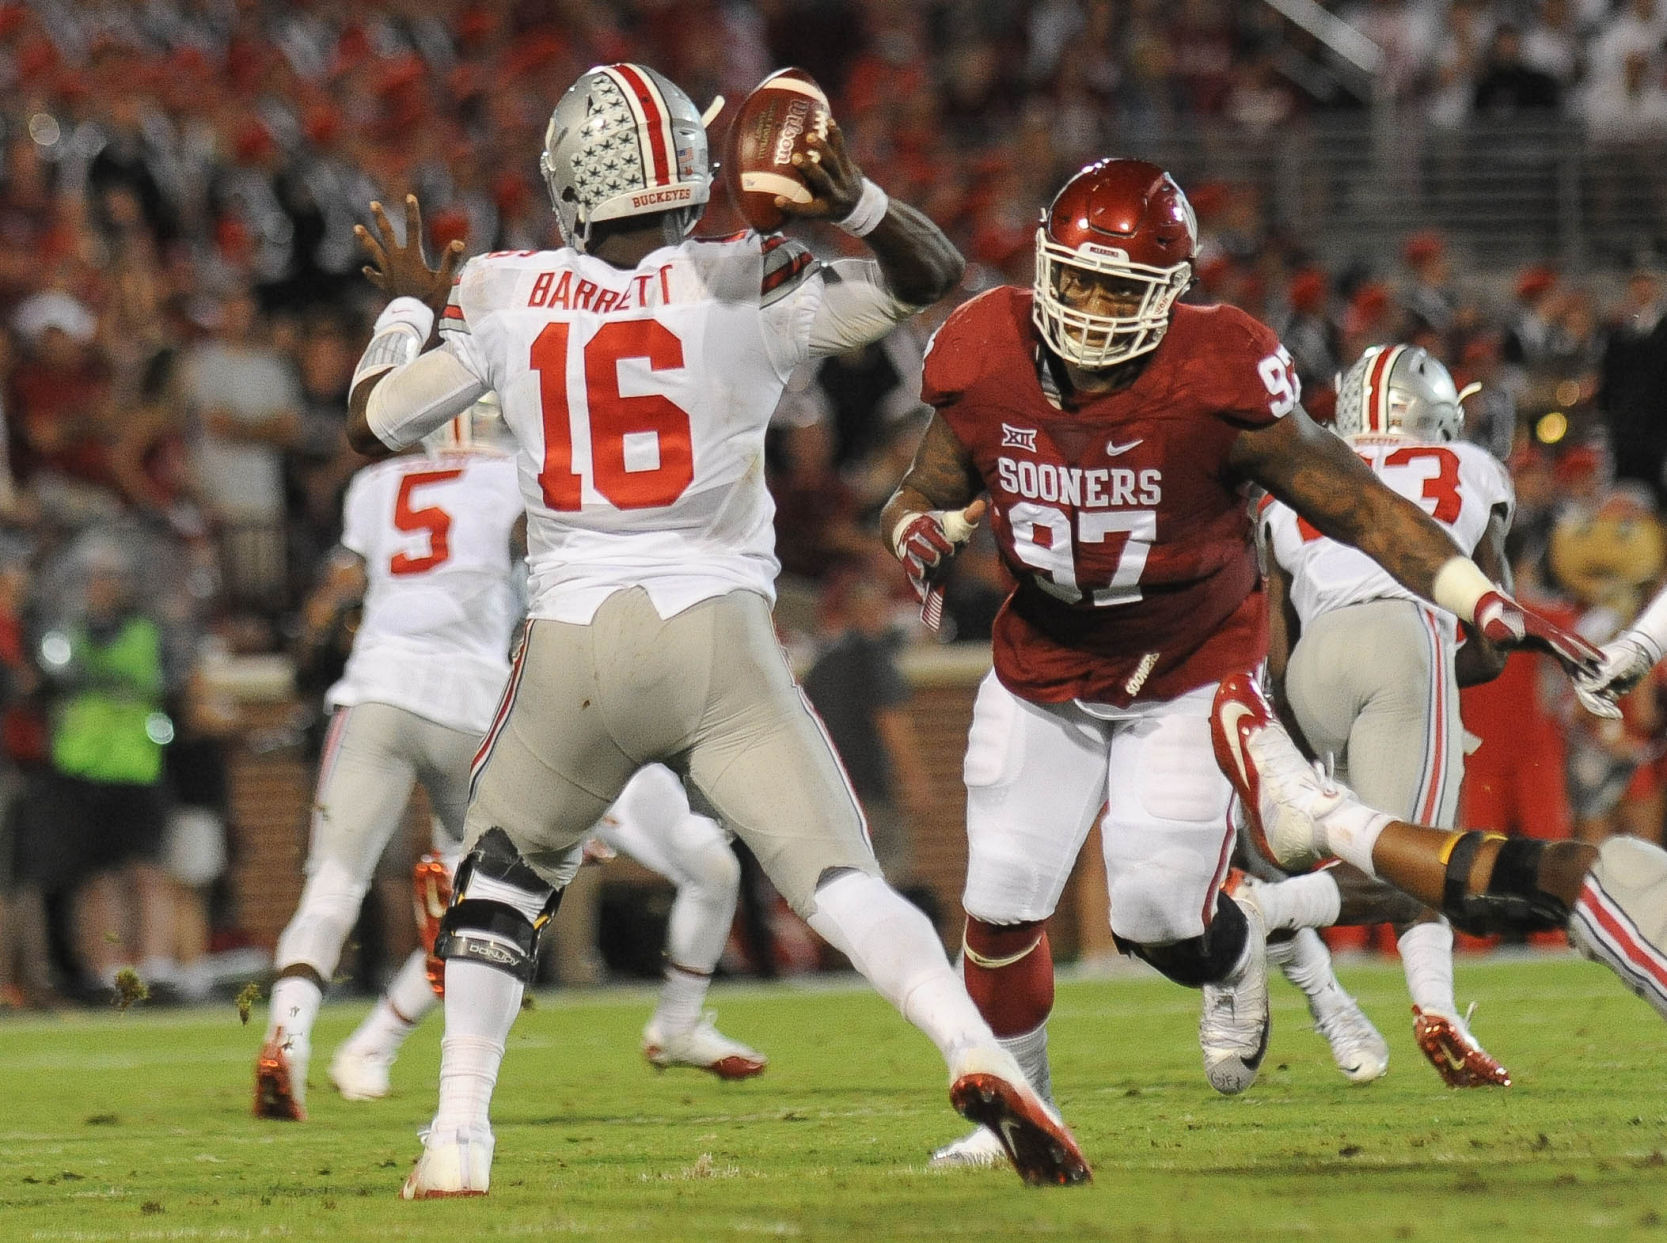 NCAAF Week 2: #5 Oklahoma @ #2 Ohio State, Preview and Prediction